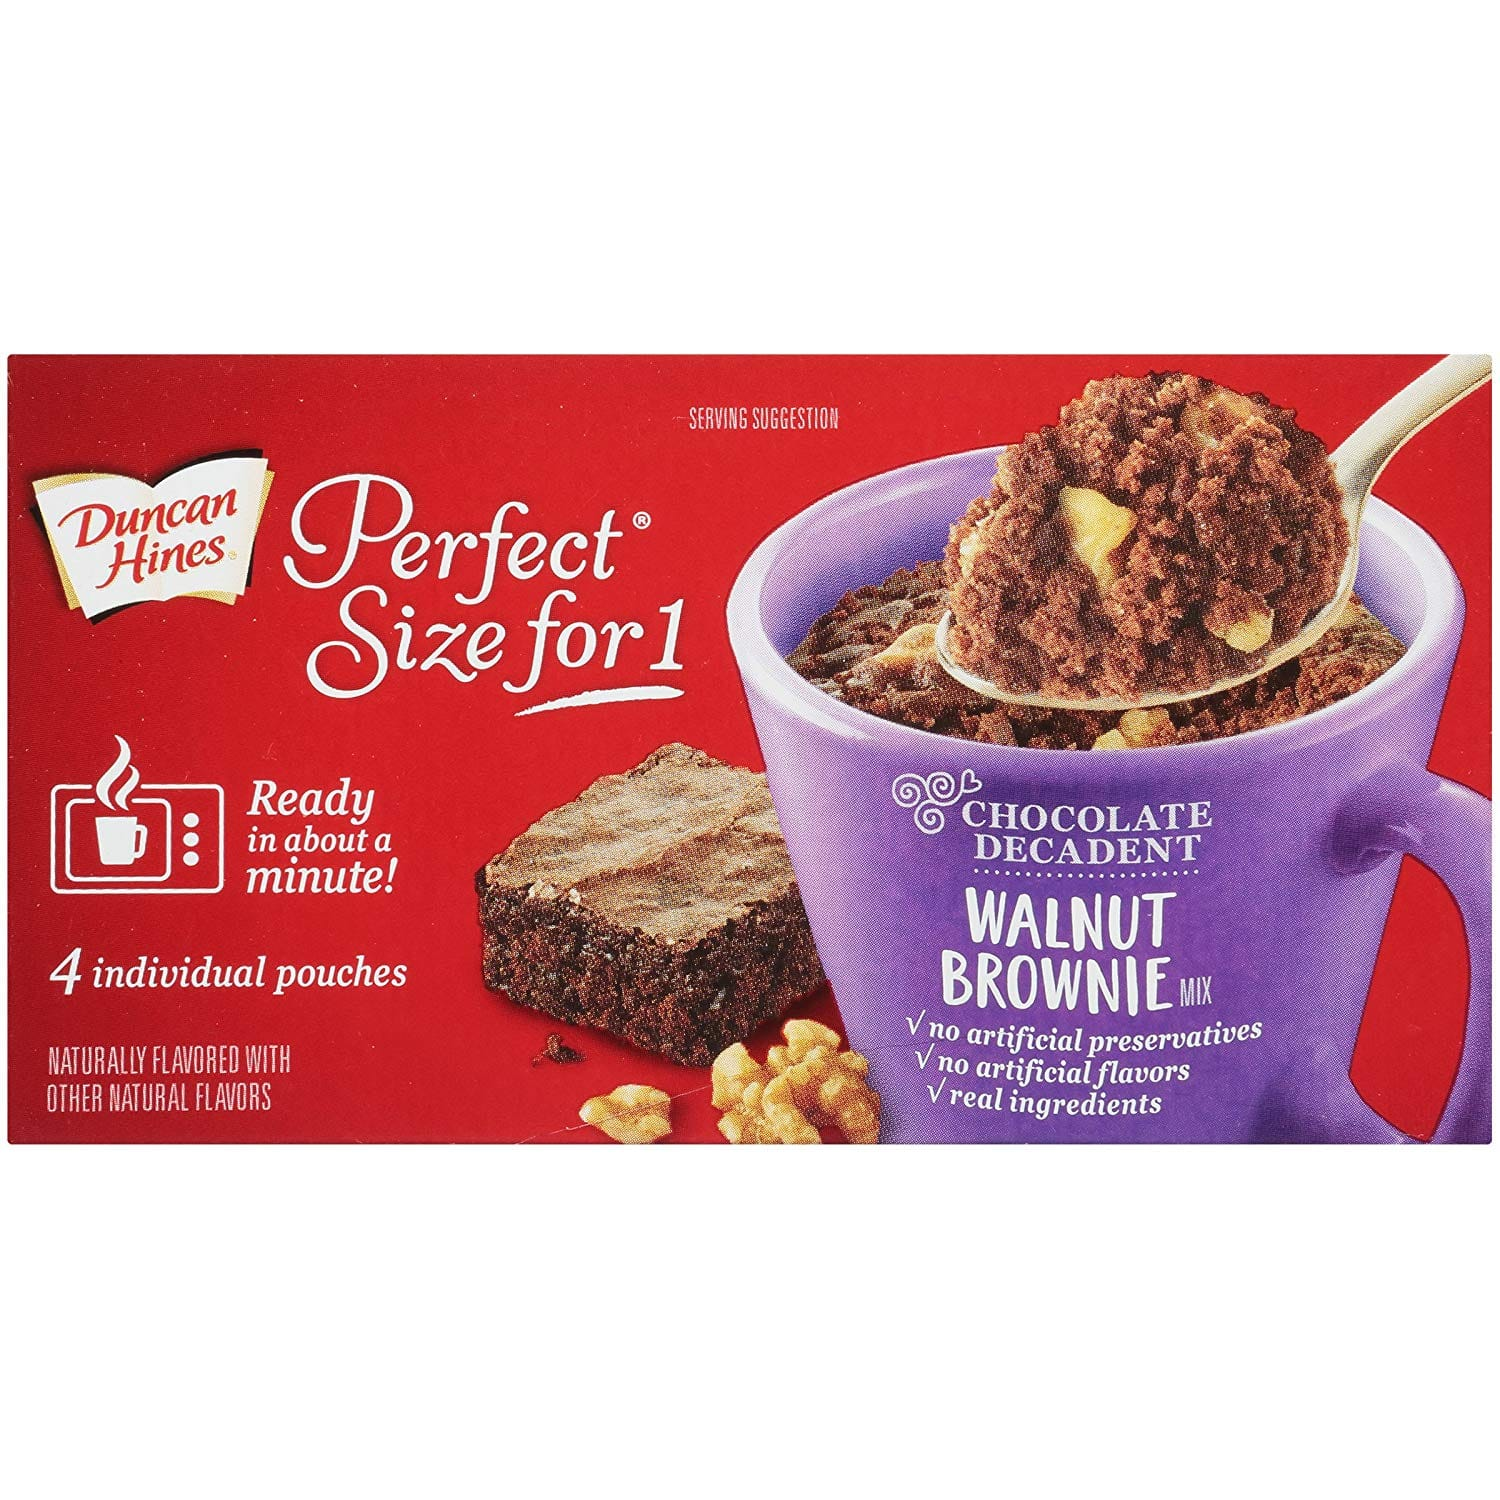 Duncan Hines Perfect Size for 1 Brownie Mix, Ready in About a Minute, Walnut Brownie, 4 Individual Pouches [Walnut Brownie] $0.95 or less